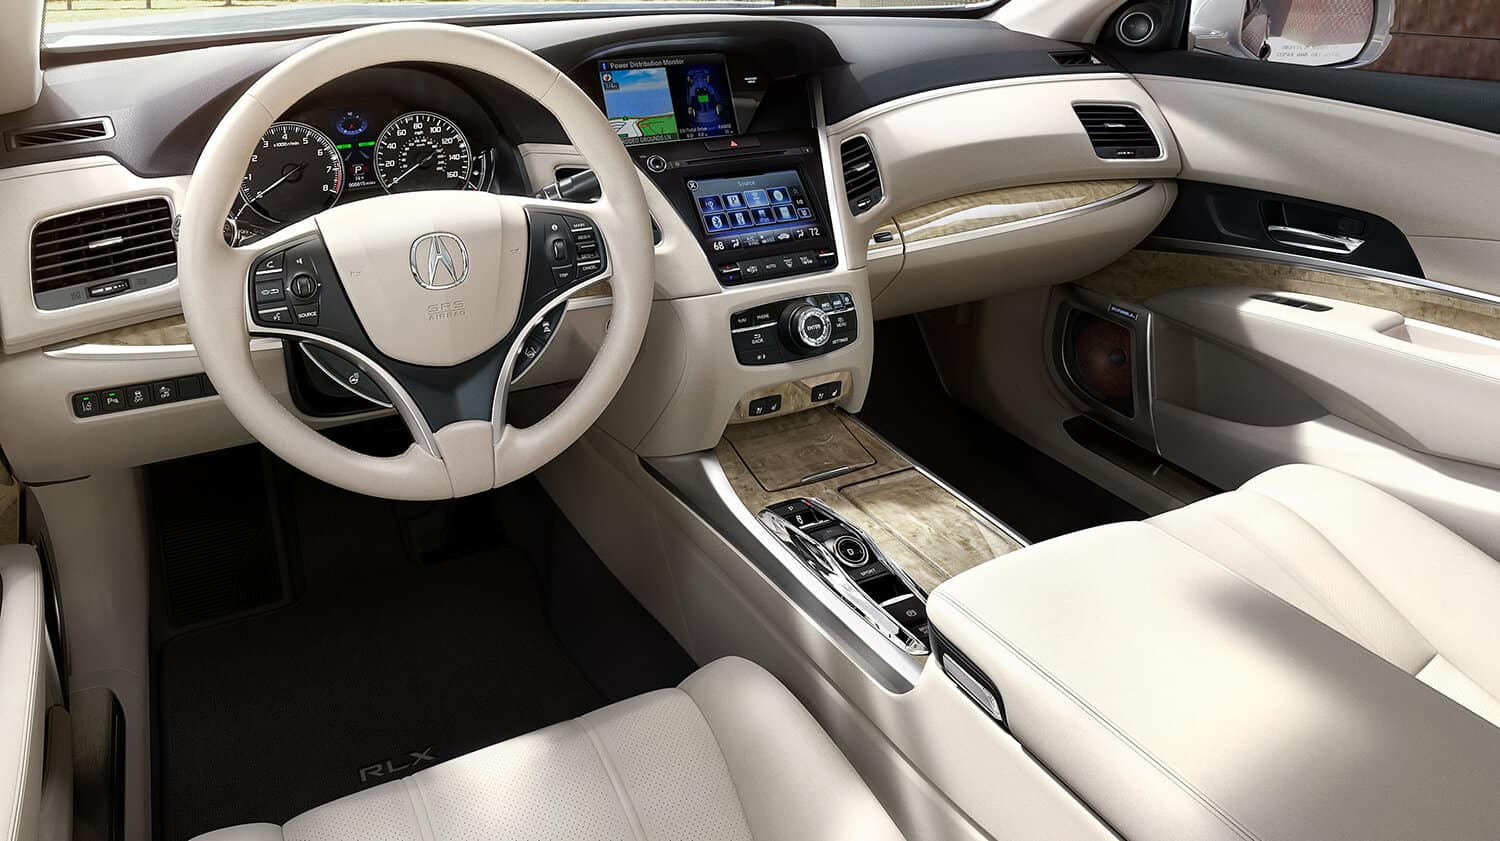 2020 Acura RLX Interior Cockpit Driver Side